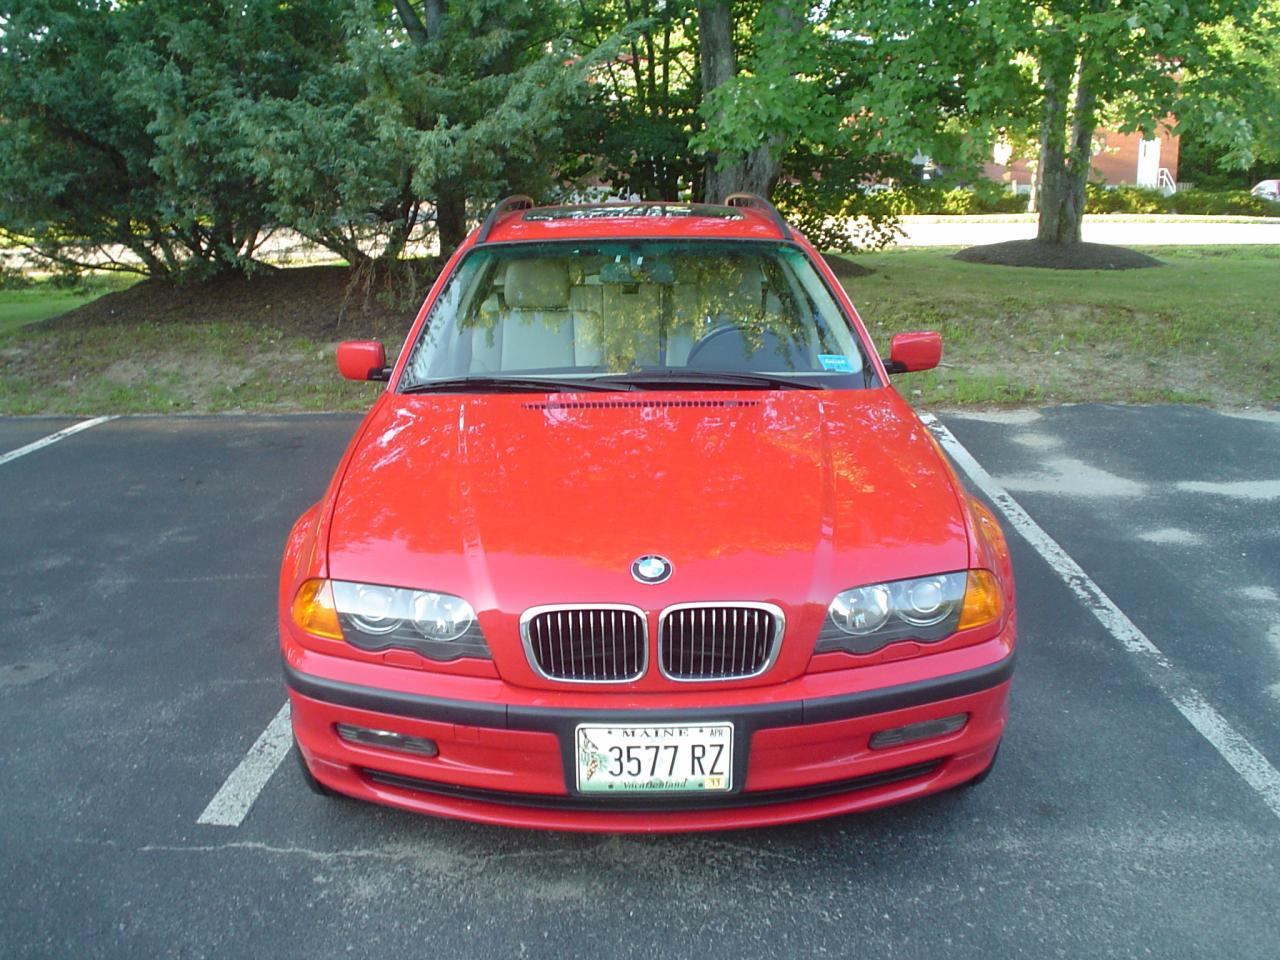 This is a very clean and low mileage 3 series wagon.There are not many in this color red.A very sharp looking car.